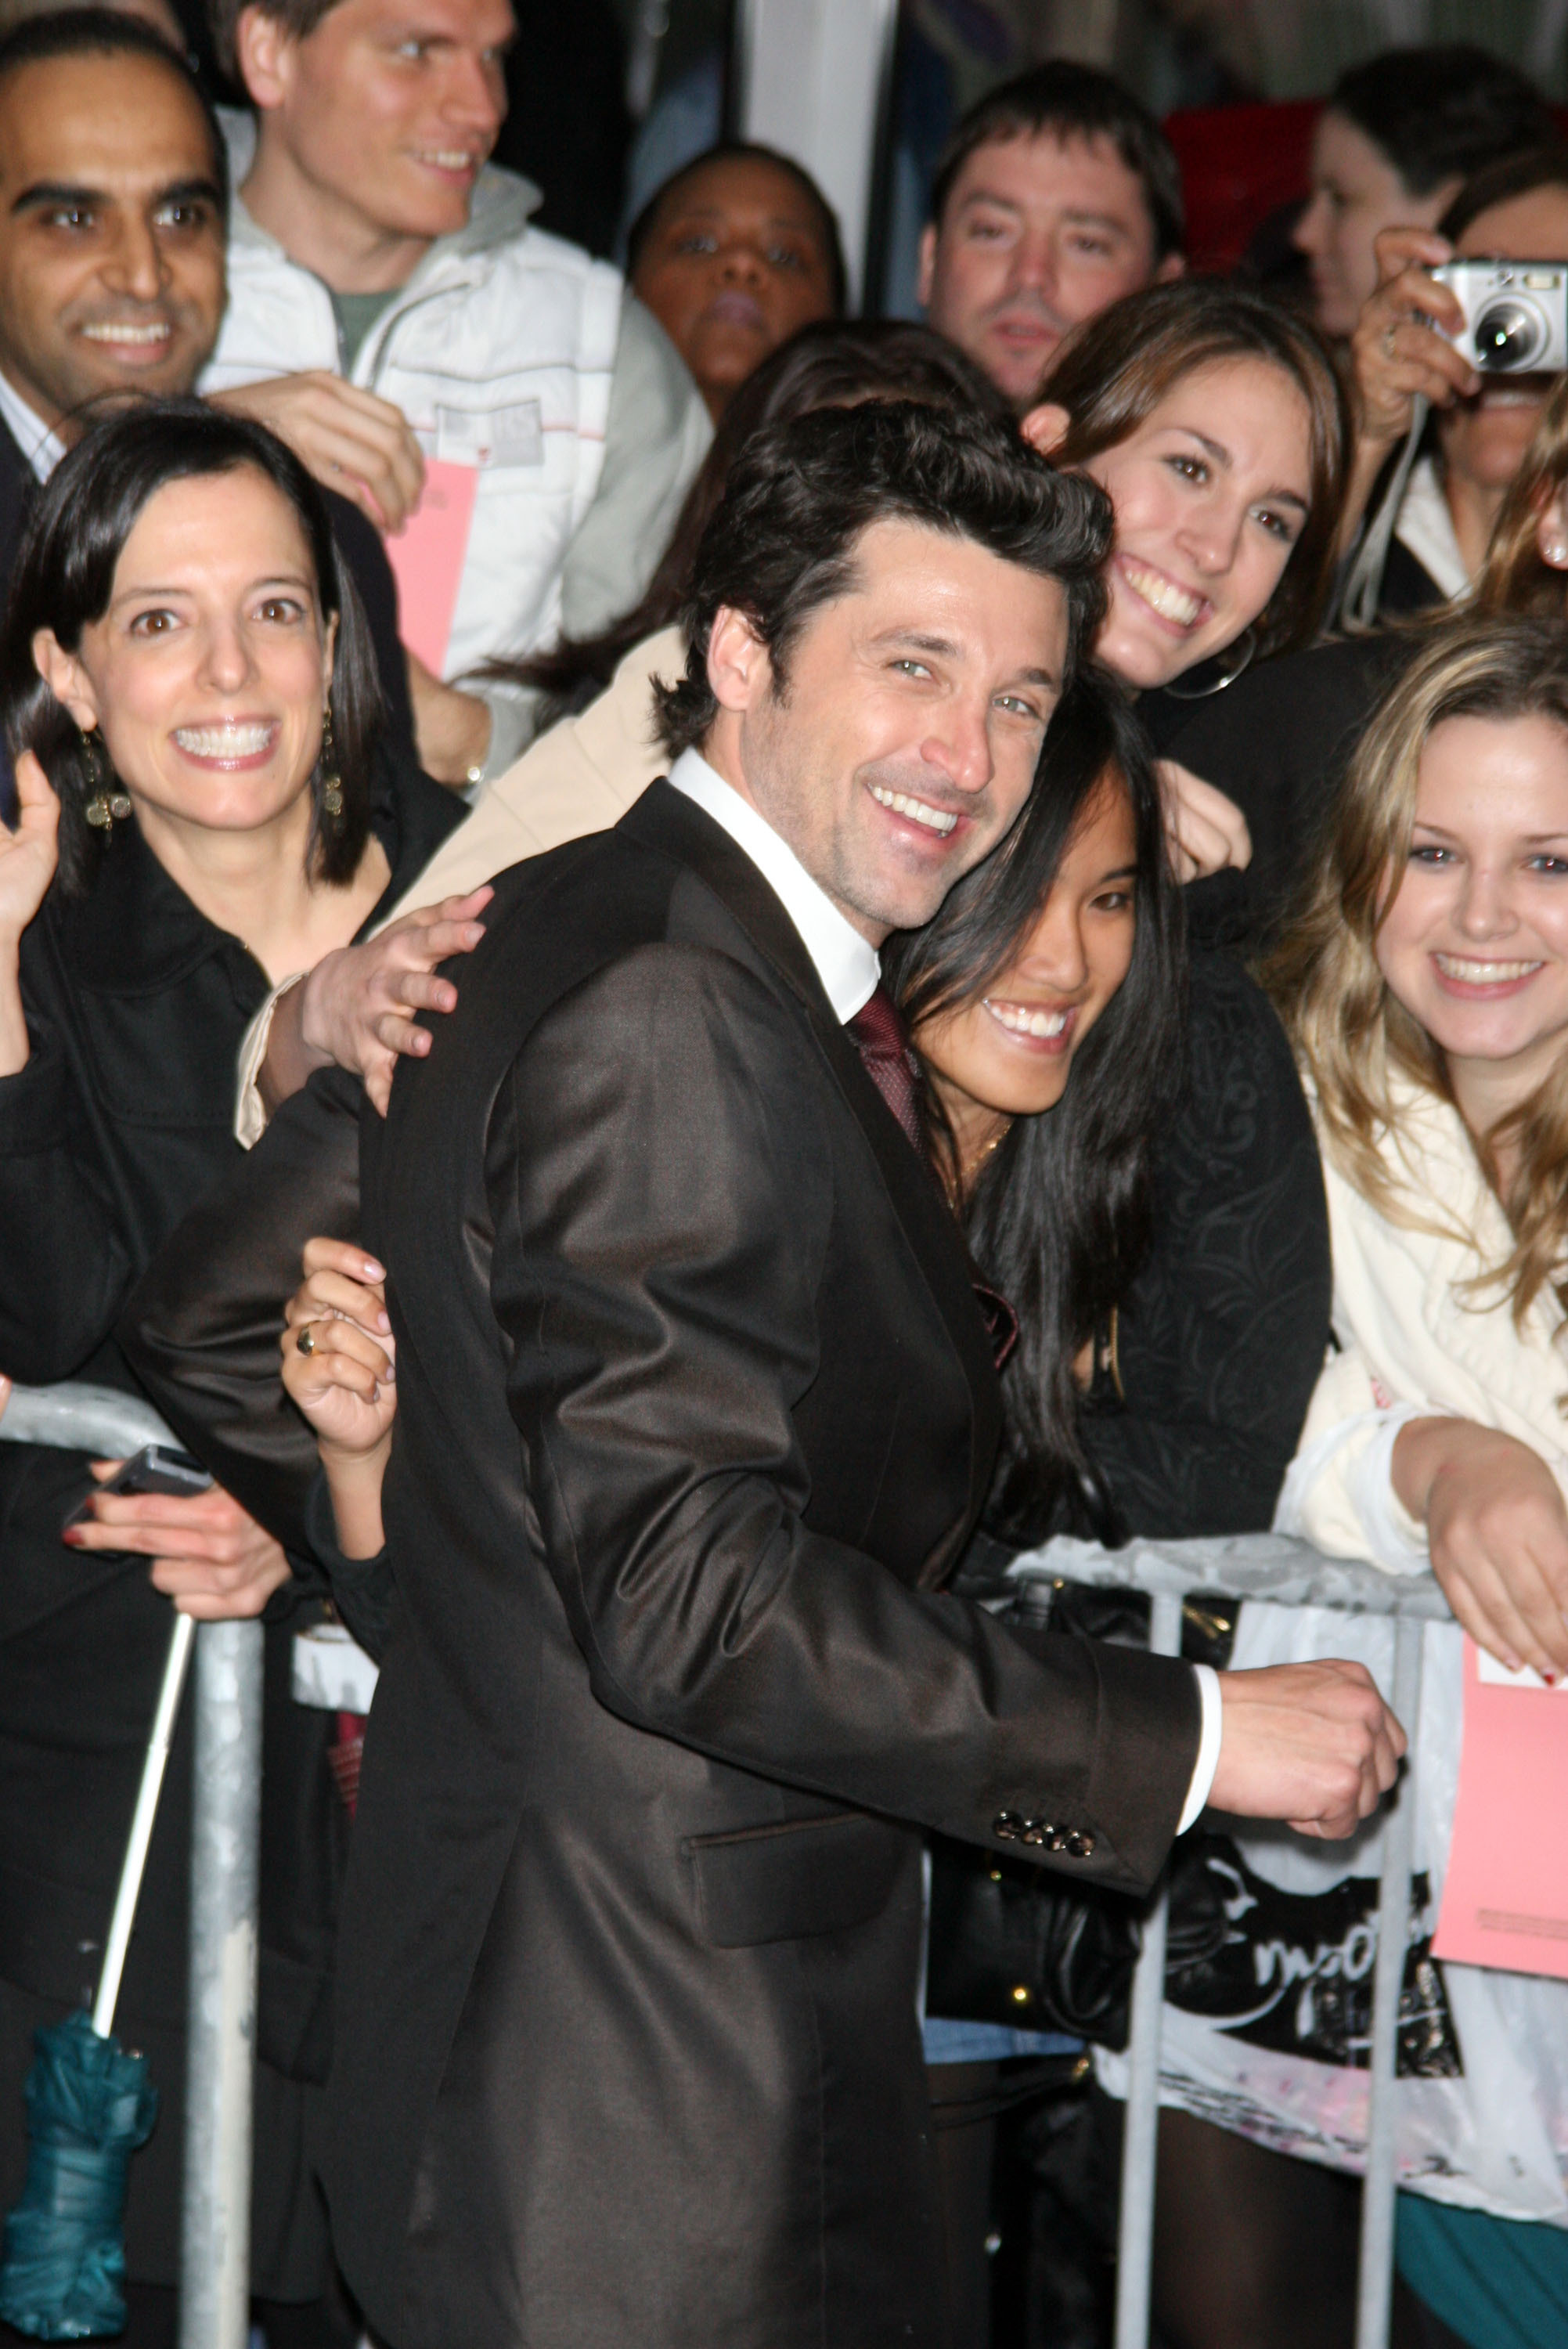 McDreamy Is Serious About Comedy and His Pecs